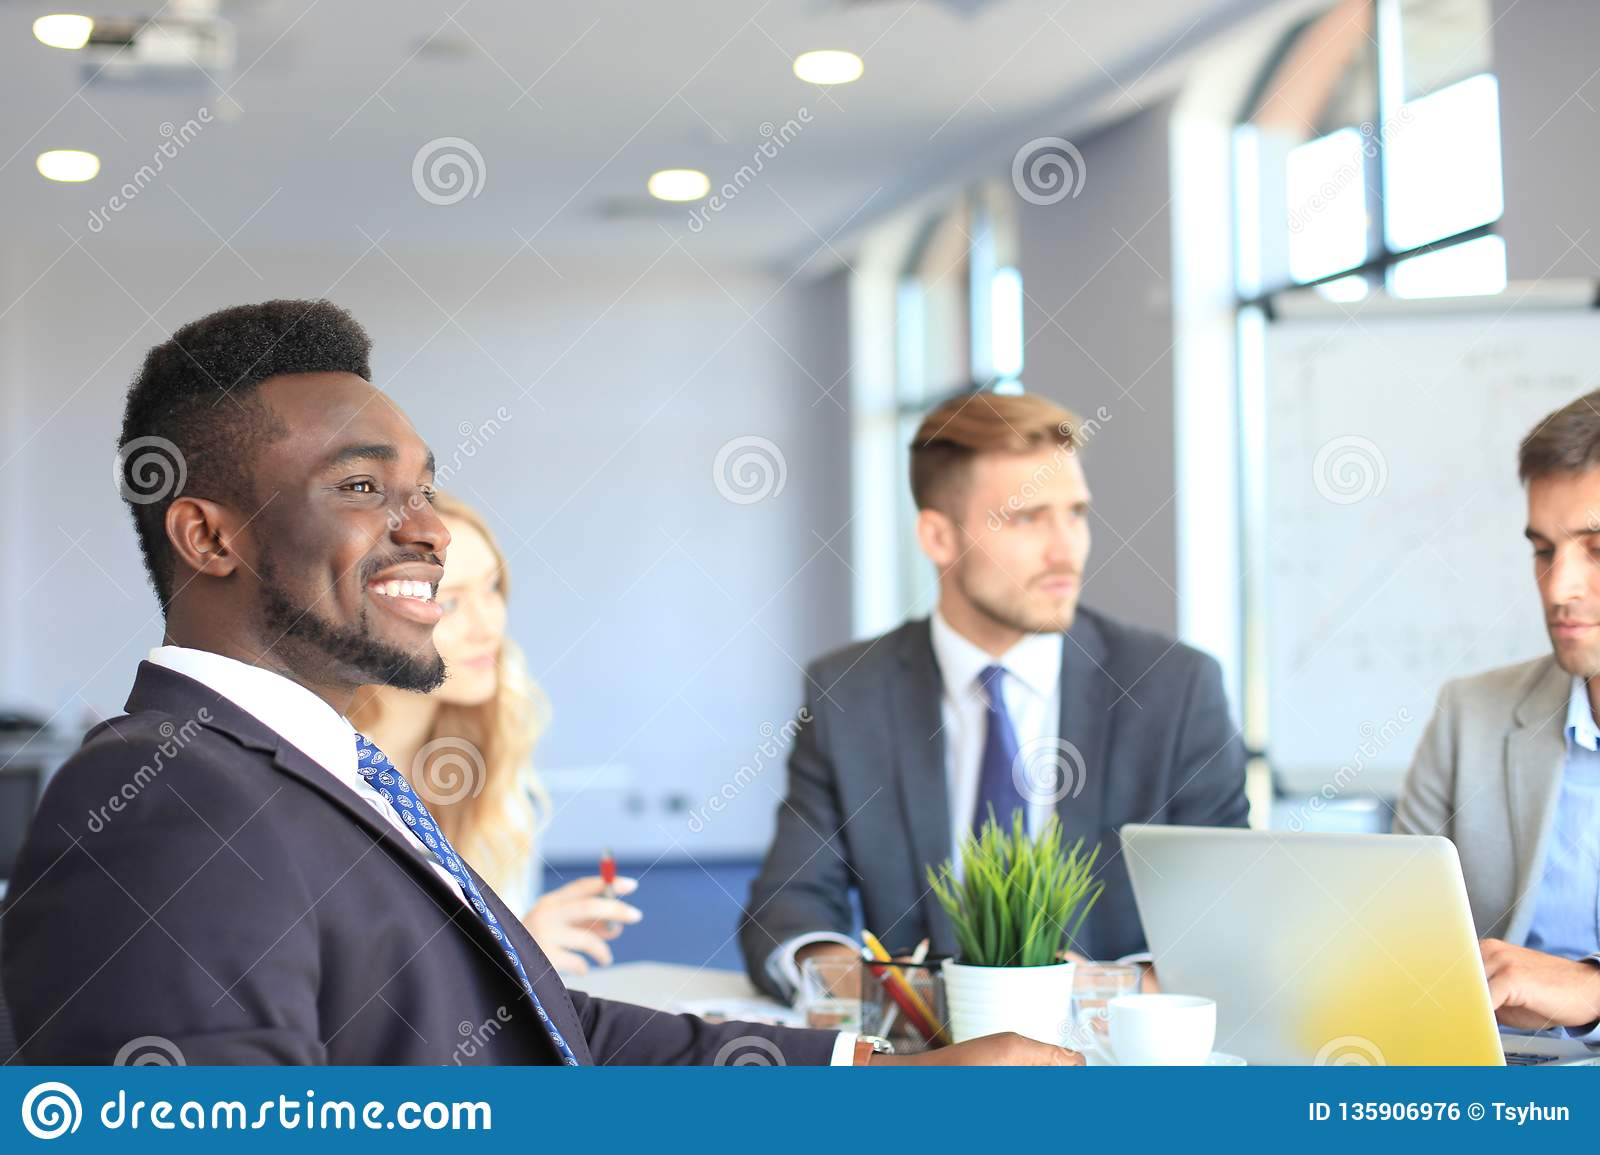 Smiling confident African businessman in a meeting with a colleagues seated at a conference table in the office.